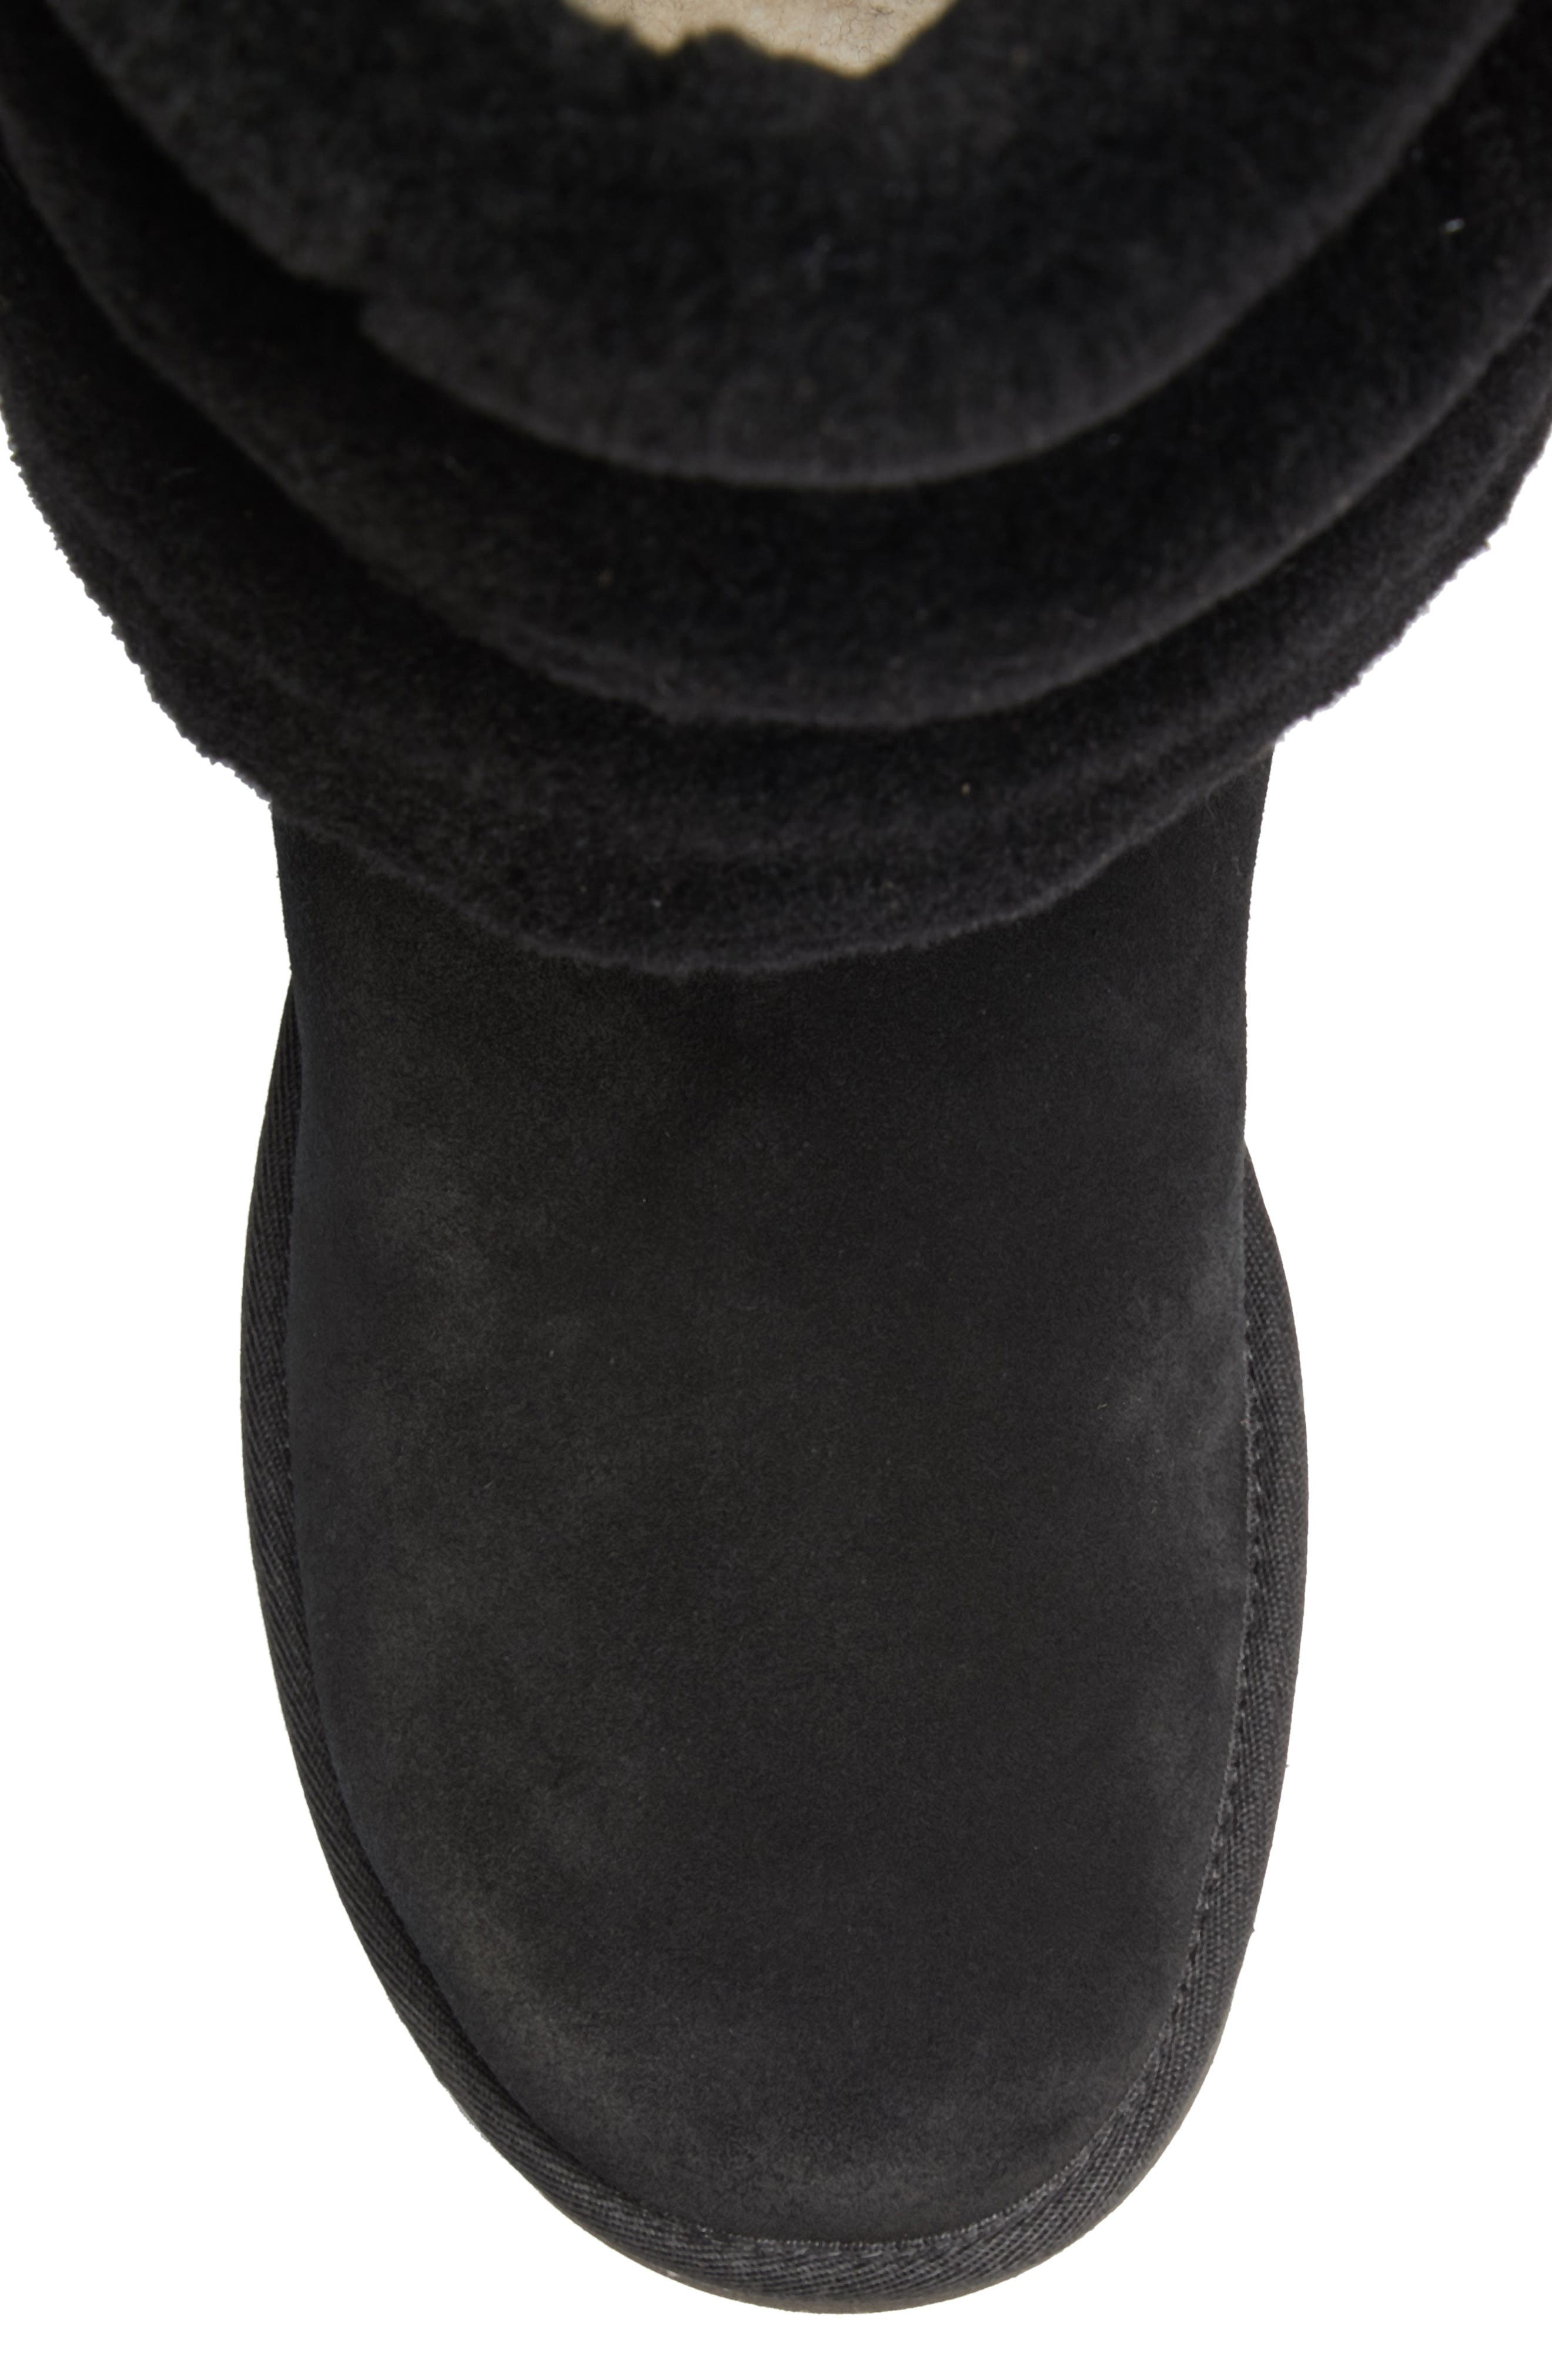 x UGG<sup>®</sup> Layered Boot,                             Alternate thumbnail 5, color,                             NOIR